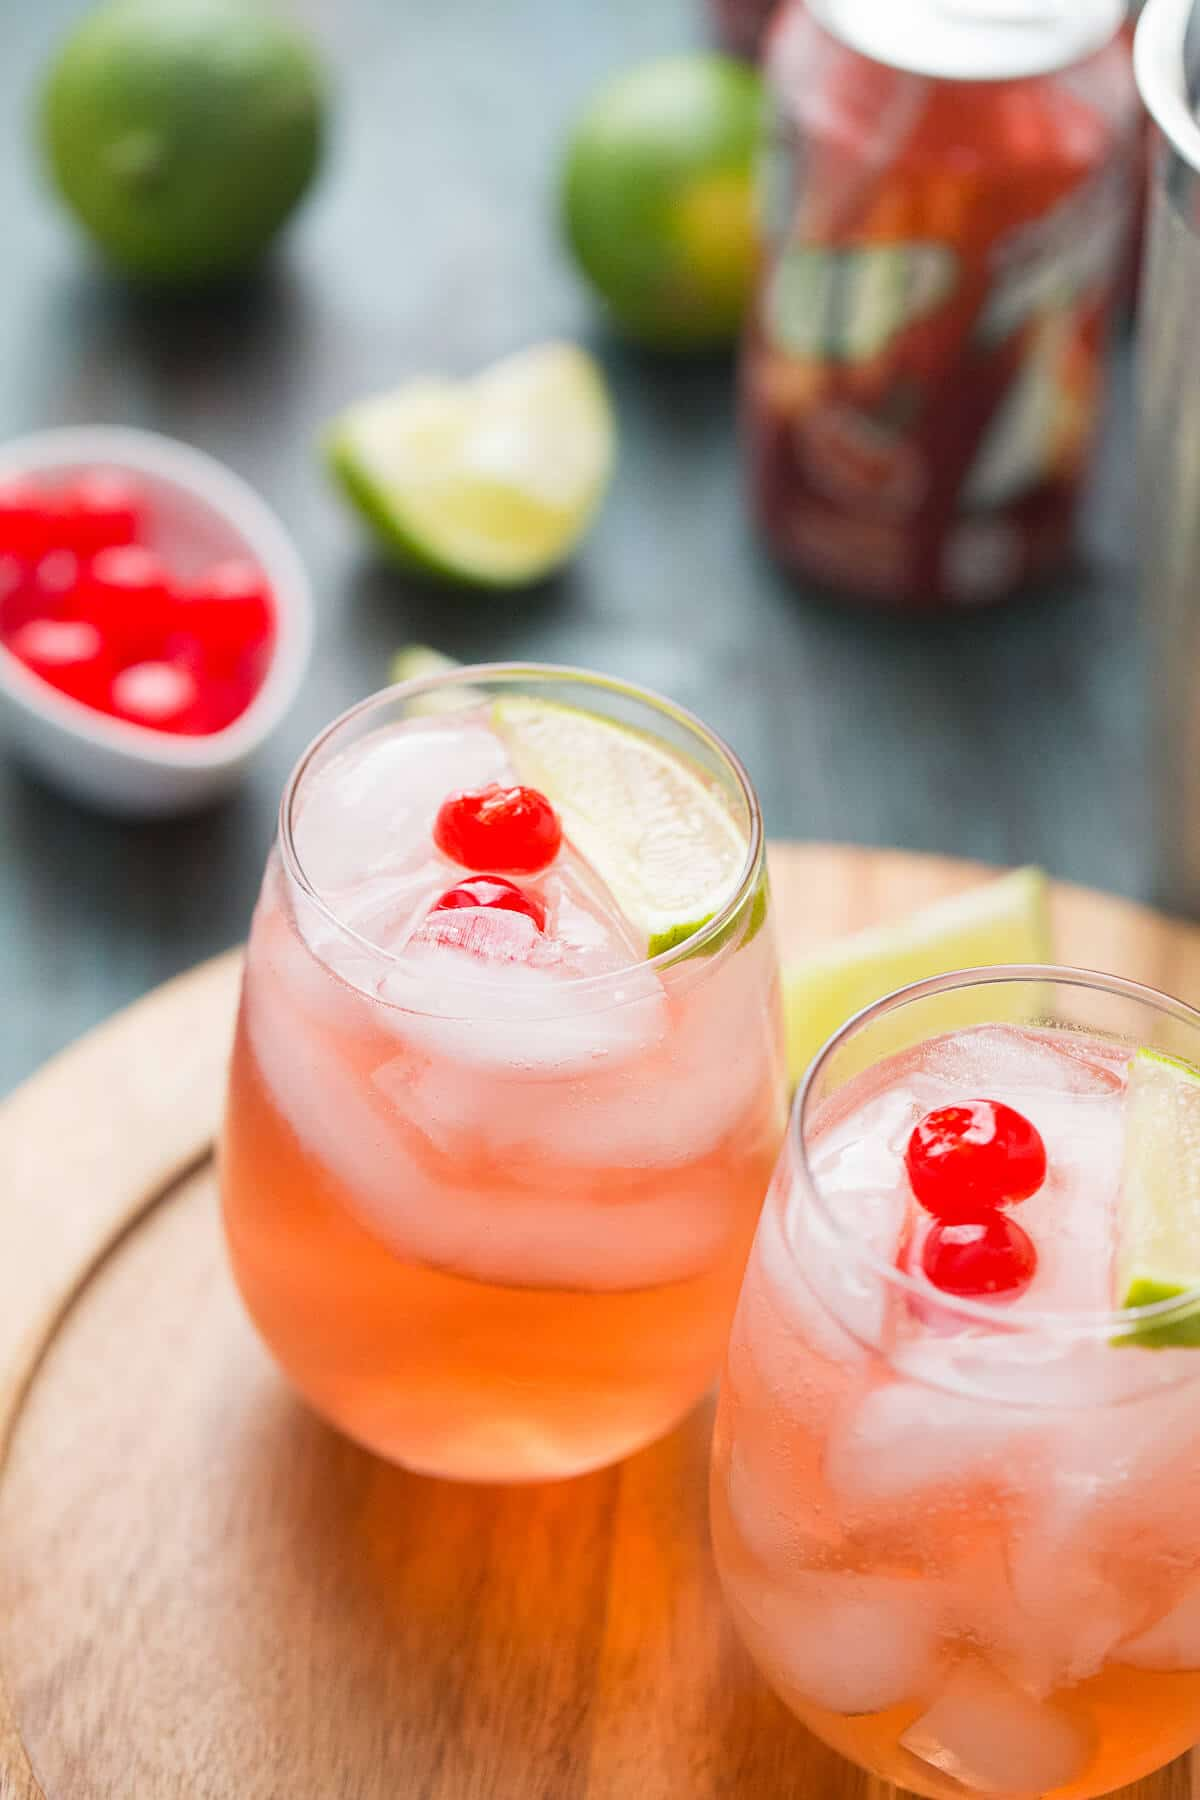 Sour cocktails can make you pucker. This cherry sour has the perfect amount of sweetness added to it!